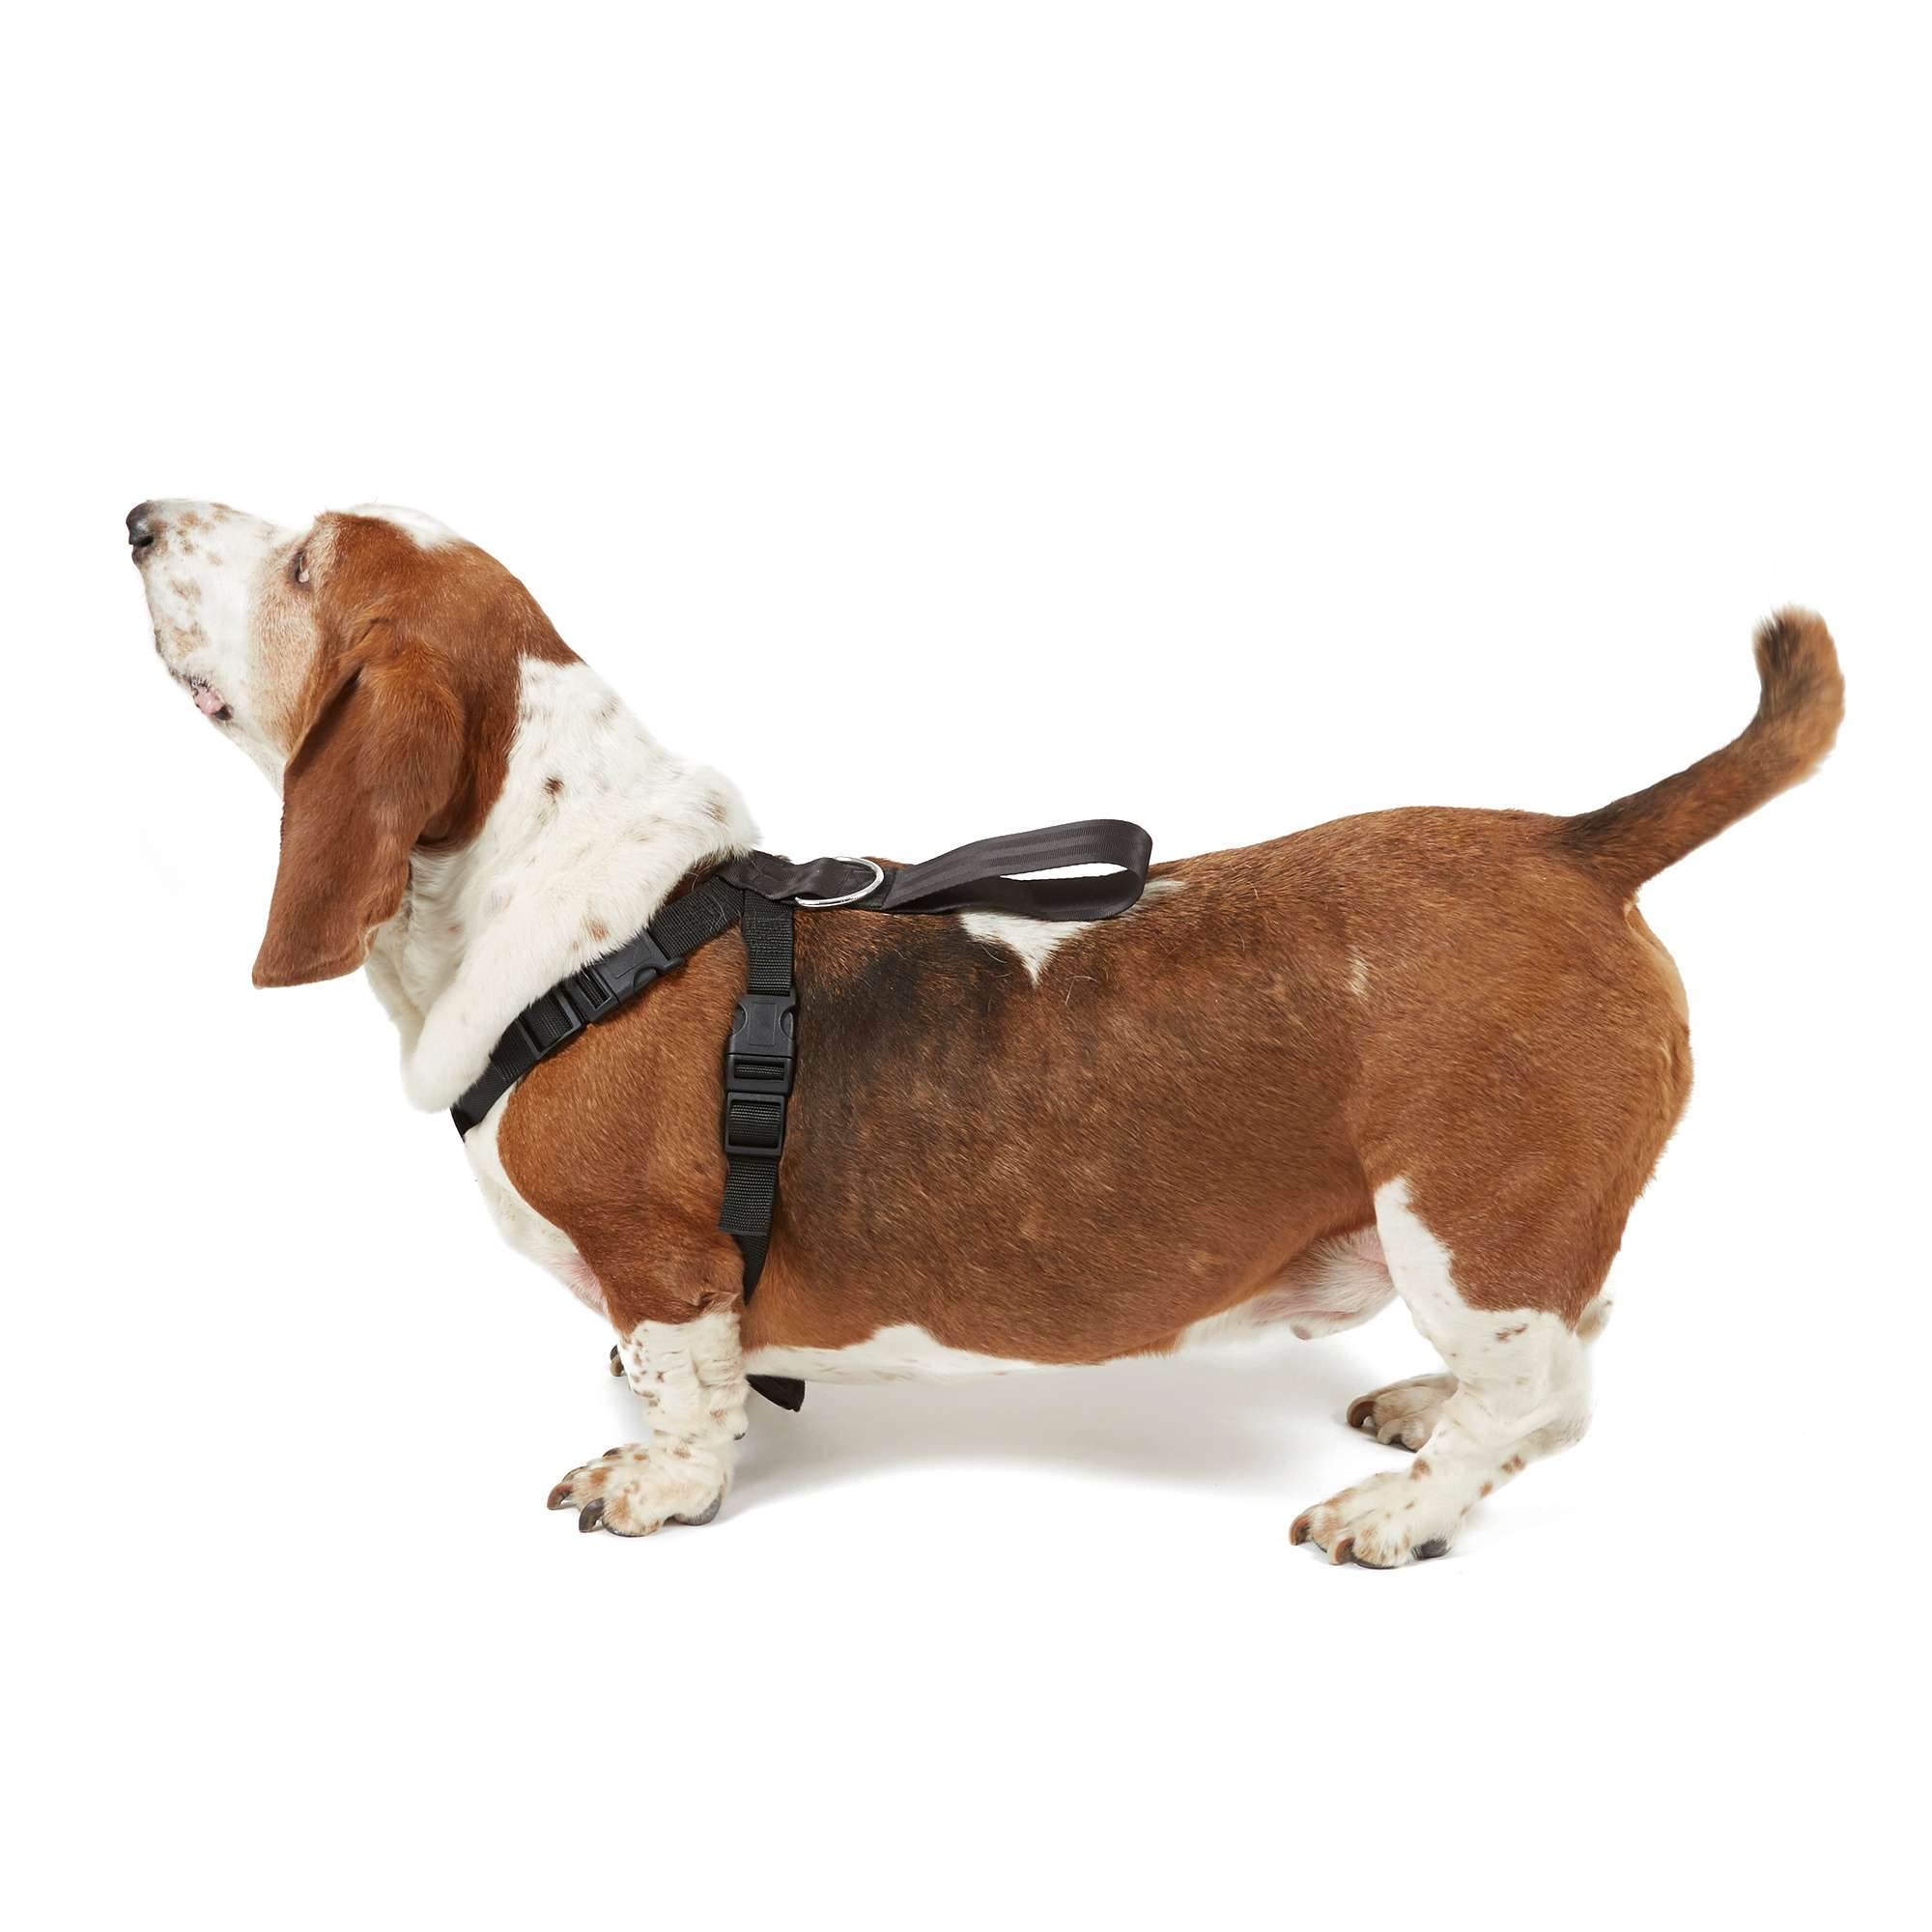 BOYZ TOYS Dog Harness - Large